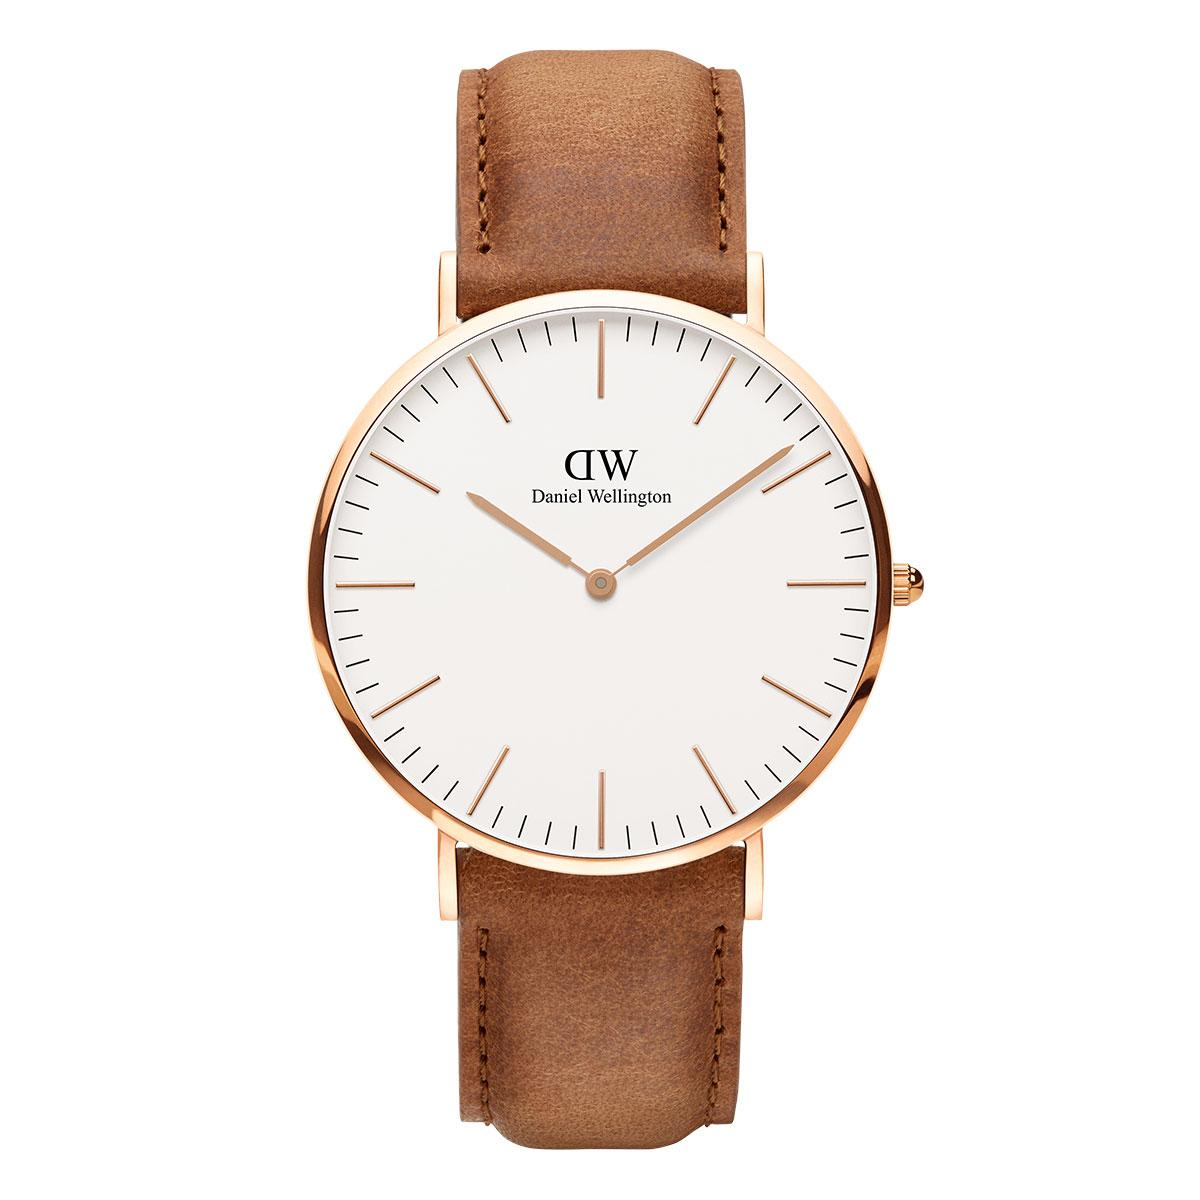 daniel wellington watch gold color with leather strap